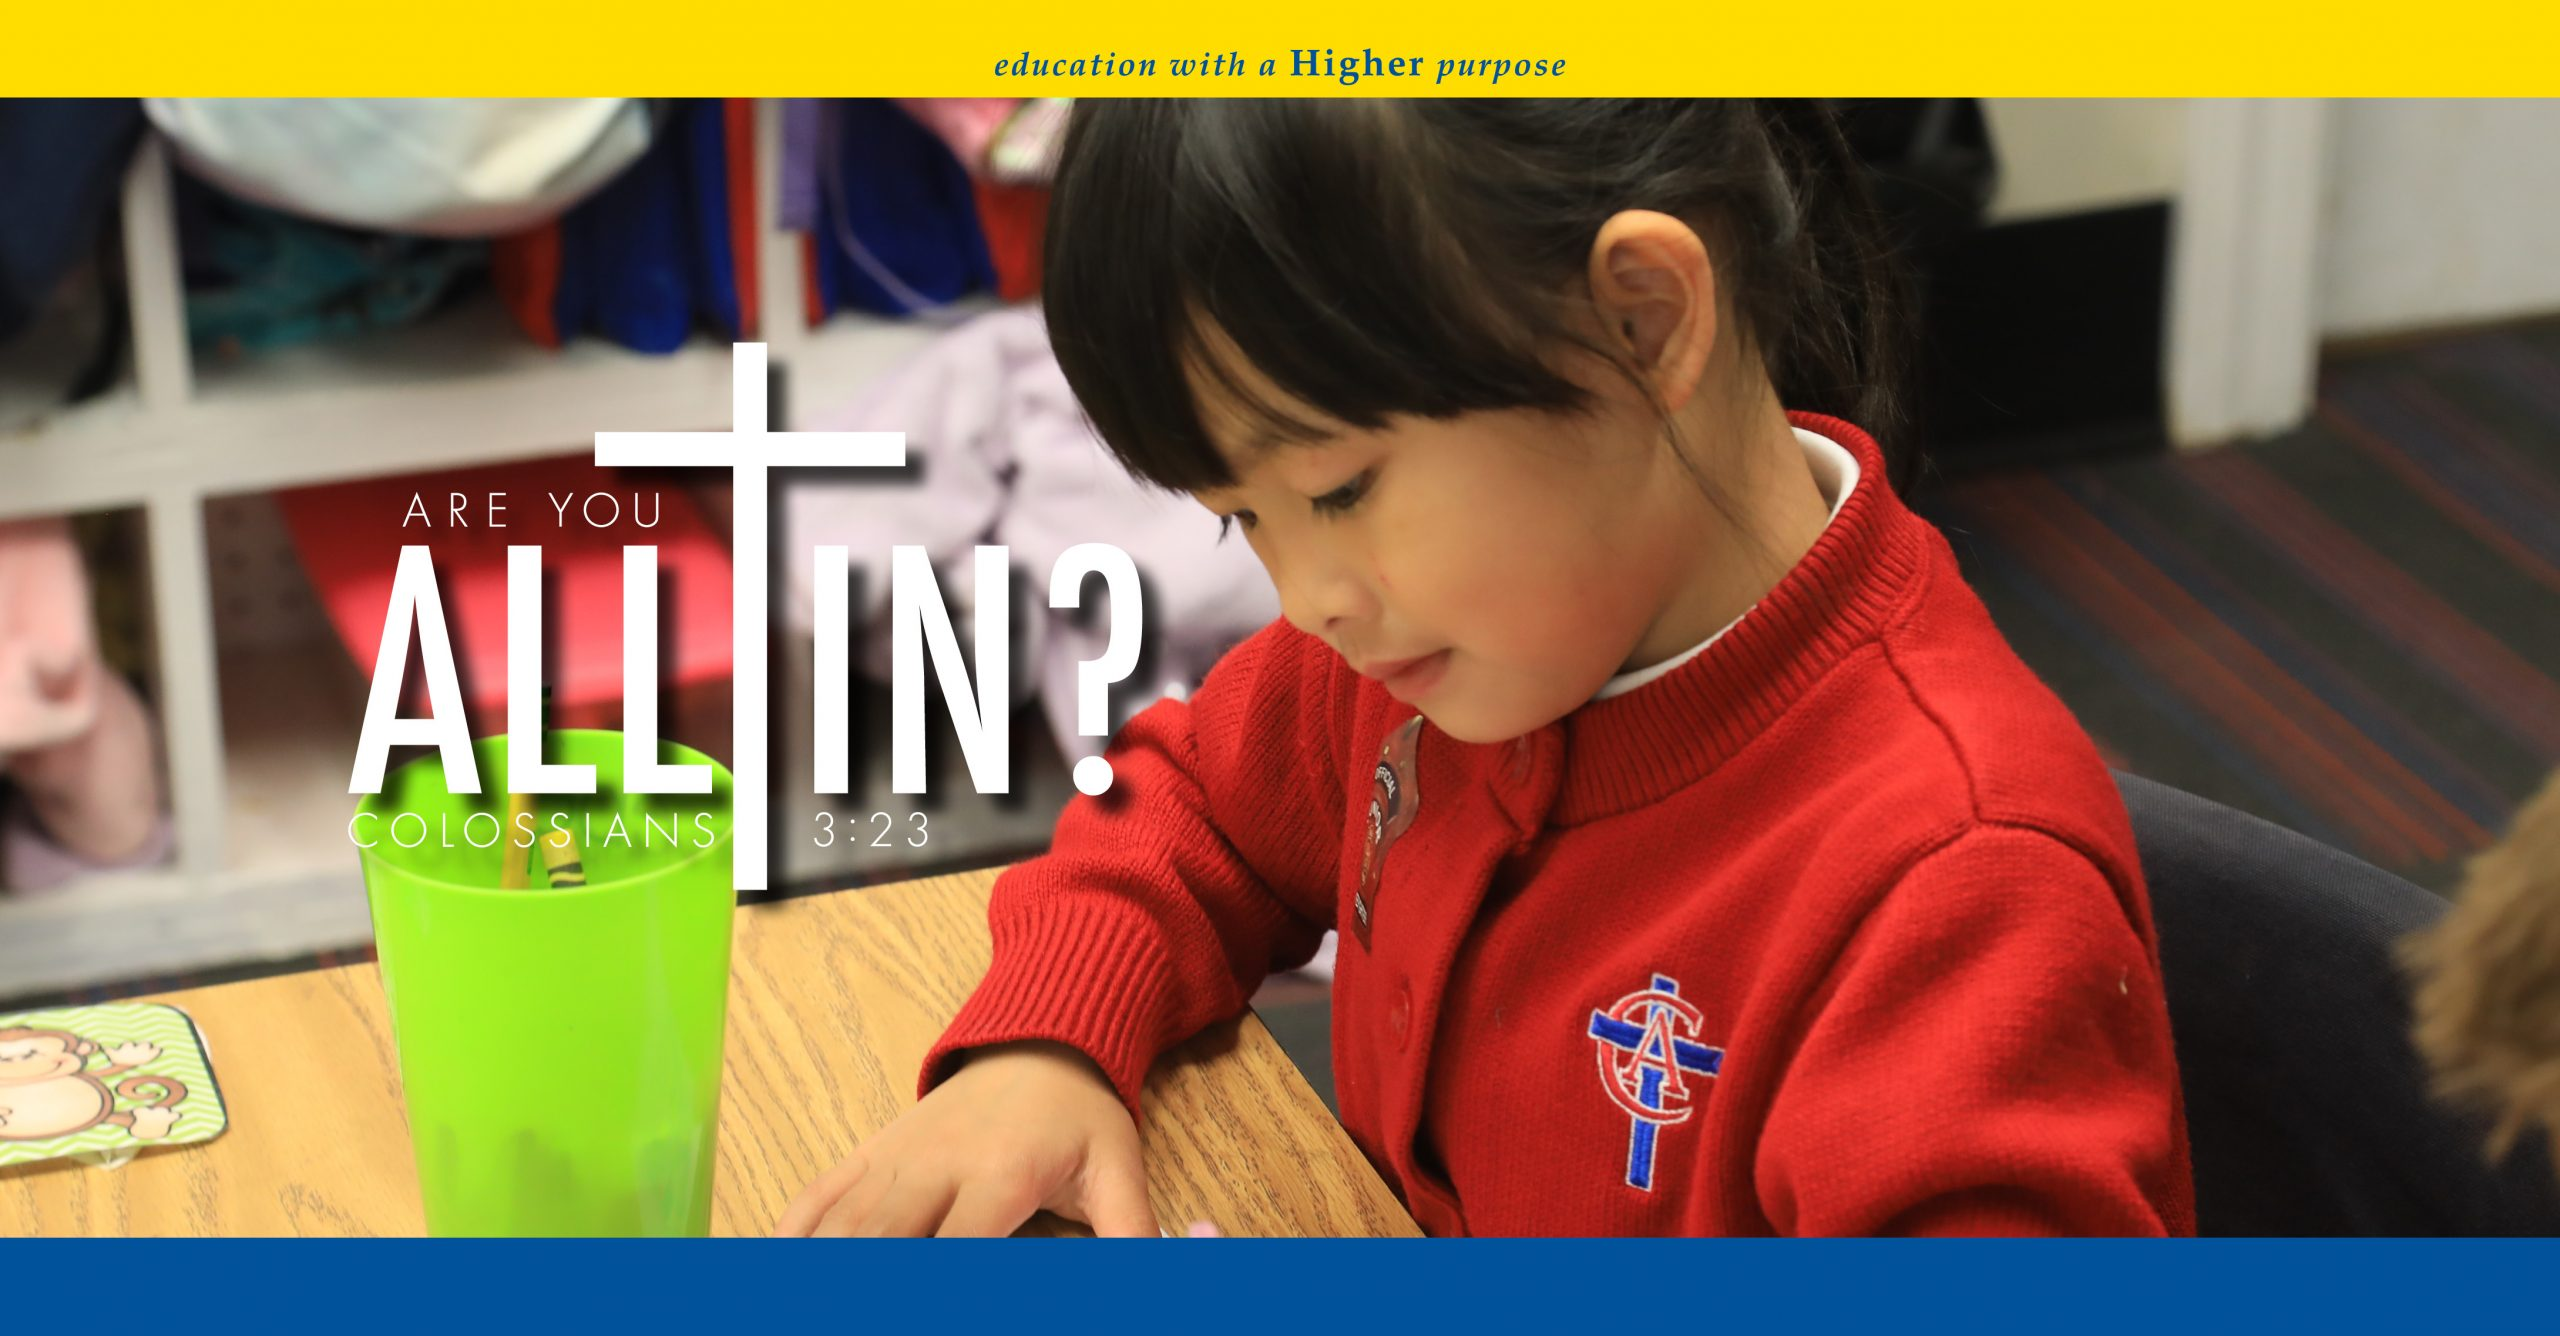 Christian Academy School System | ALL IN!